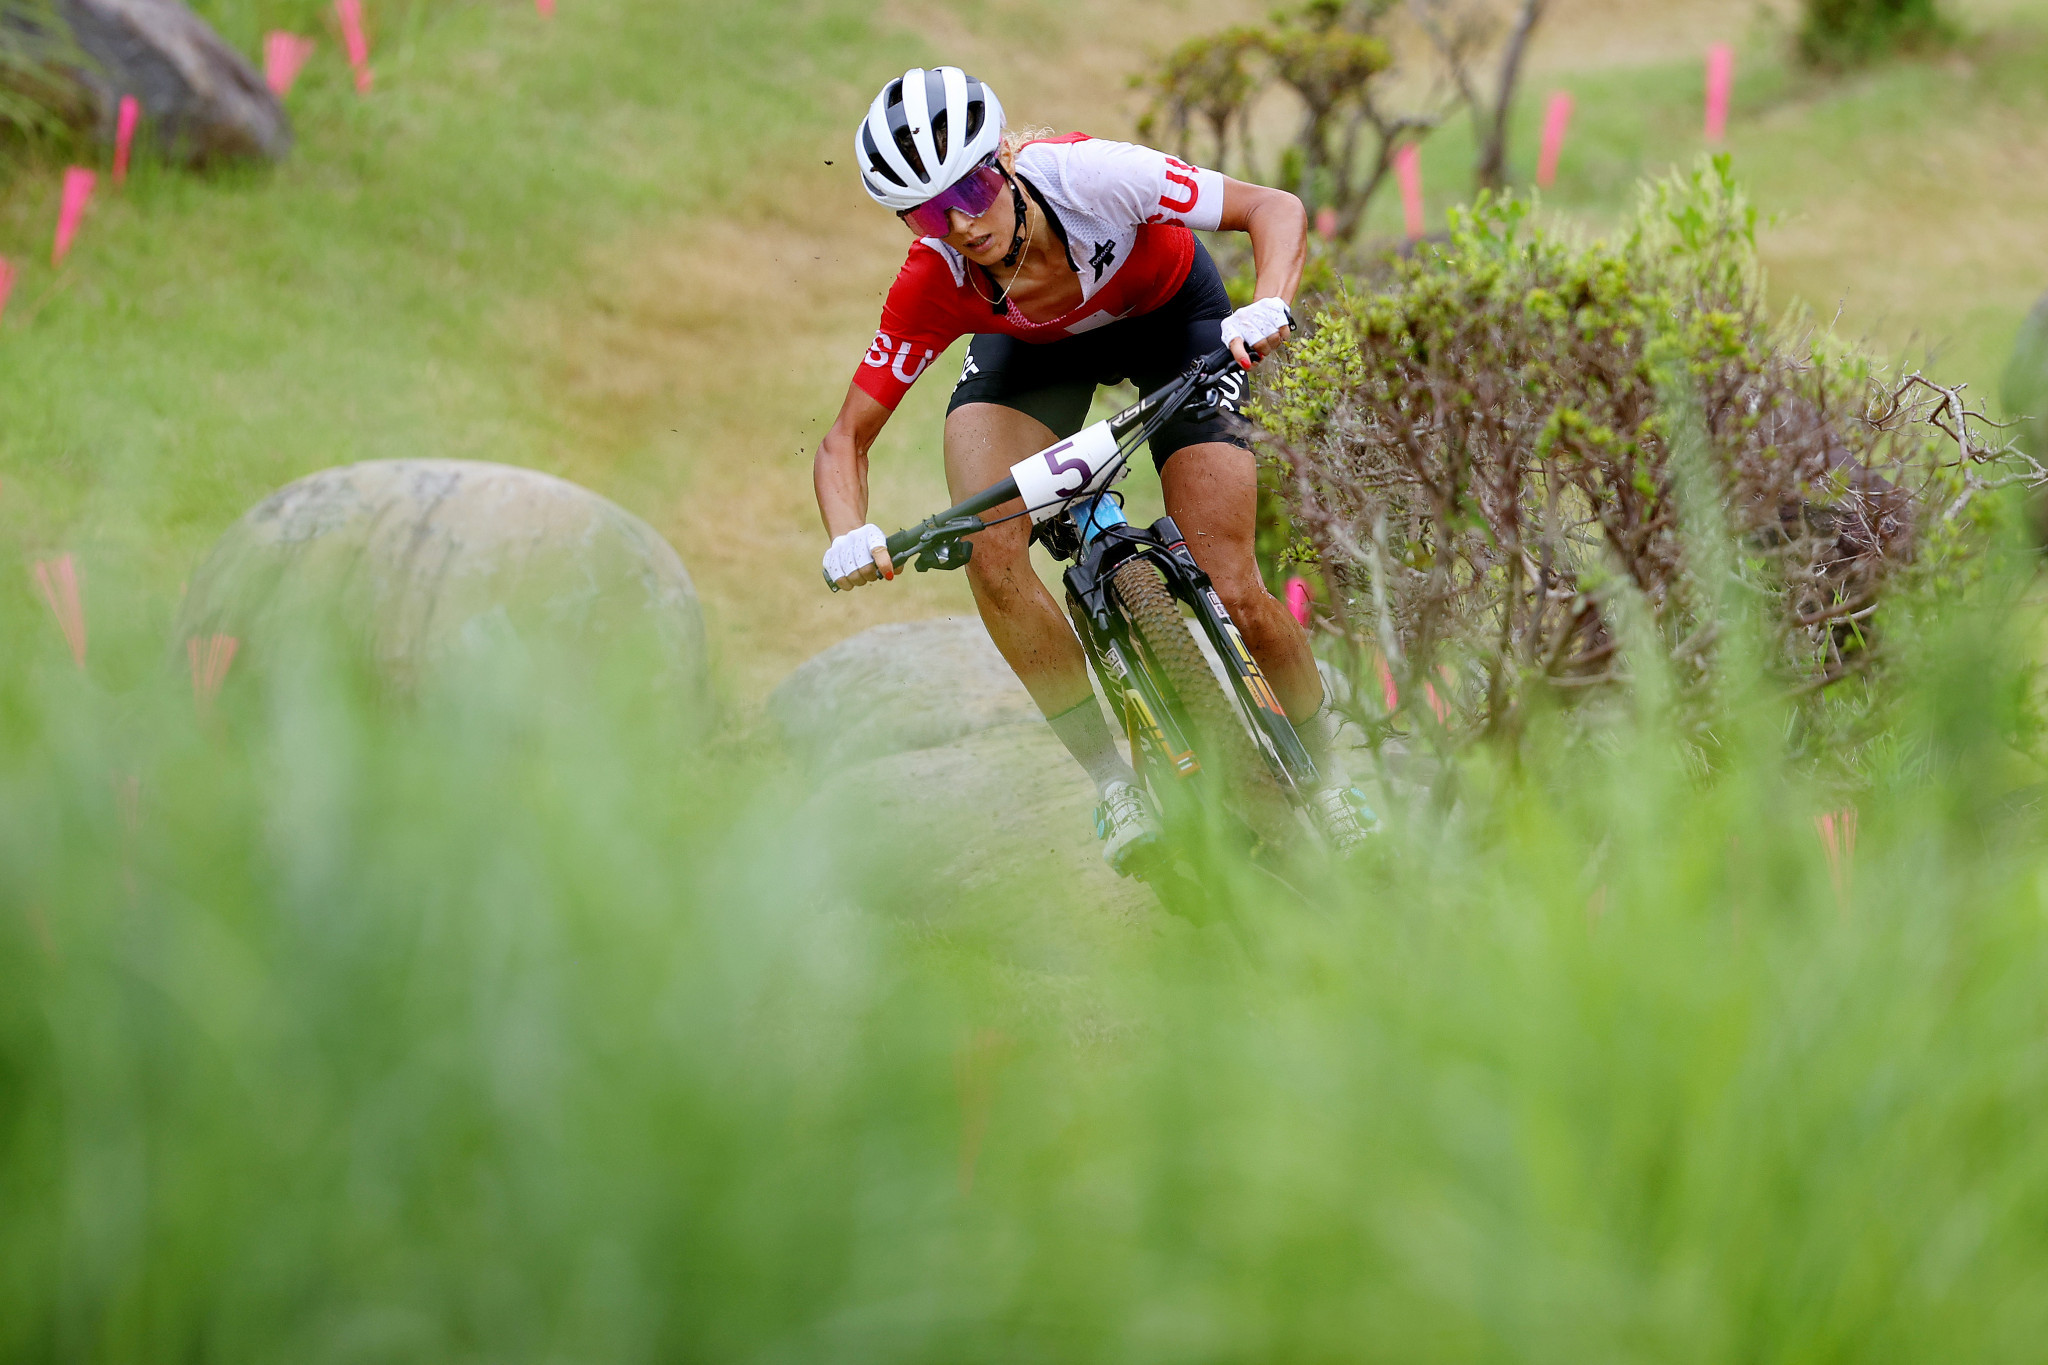 Jolanda Neff led home a Swiss clean sweep of the podium in the women's mountain bike race ©Getty Images